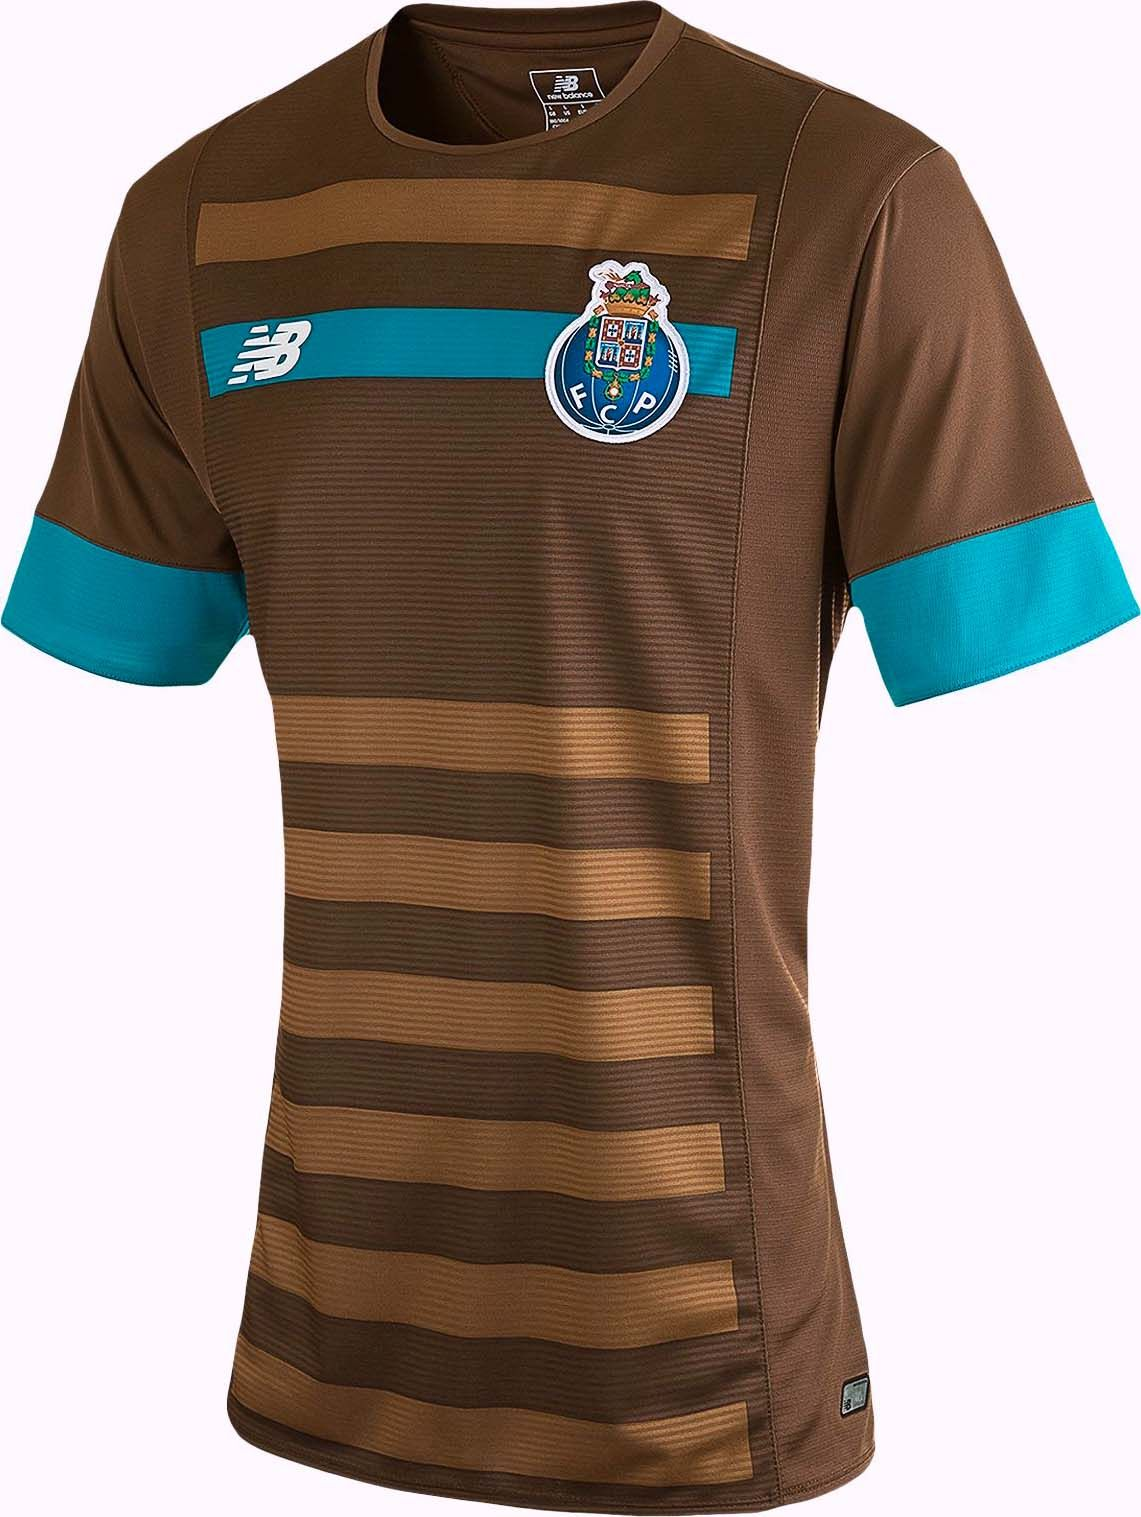 4dc5ed615 The New Balance FC Porto 15-16 Kits feature striking design. While the New  Balance FC Porto 2015-16 Home Kit is traditional, the new Porto 15-16 Away  Jersey ...